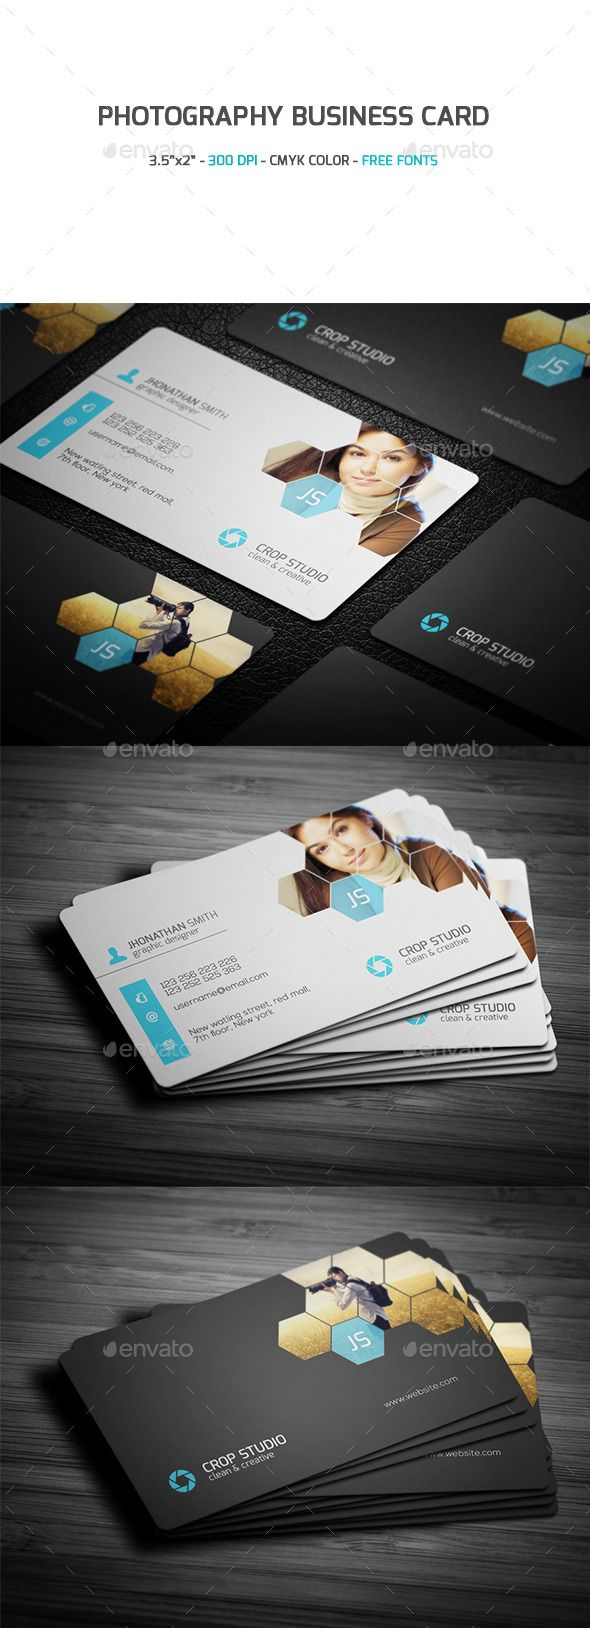 745 best design business cards images on pinterest business 745 best design business cards images on pinterest business cards advertising and architecture magicingreecefo Gallery